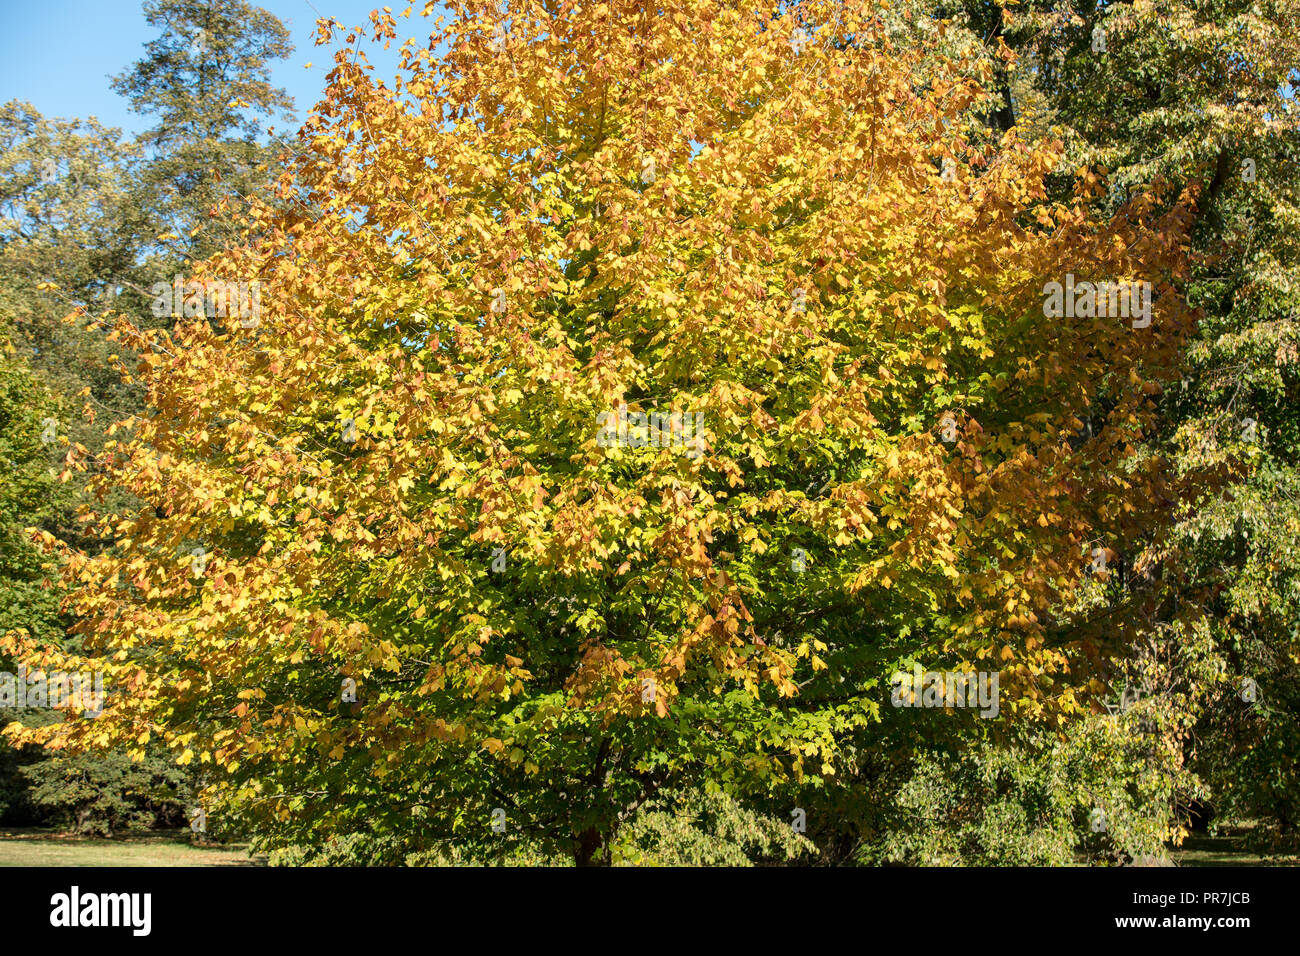 Kew, Richmond, GB. Yellow, orange and scarlet autumn coloured leaves of the Black Sugar Maple on a late and sunny September afternoon at Kew Gardens. Stock Photo